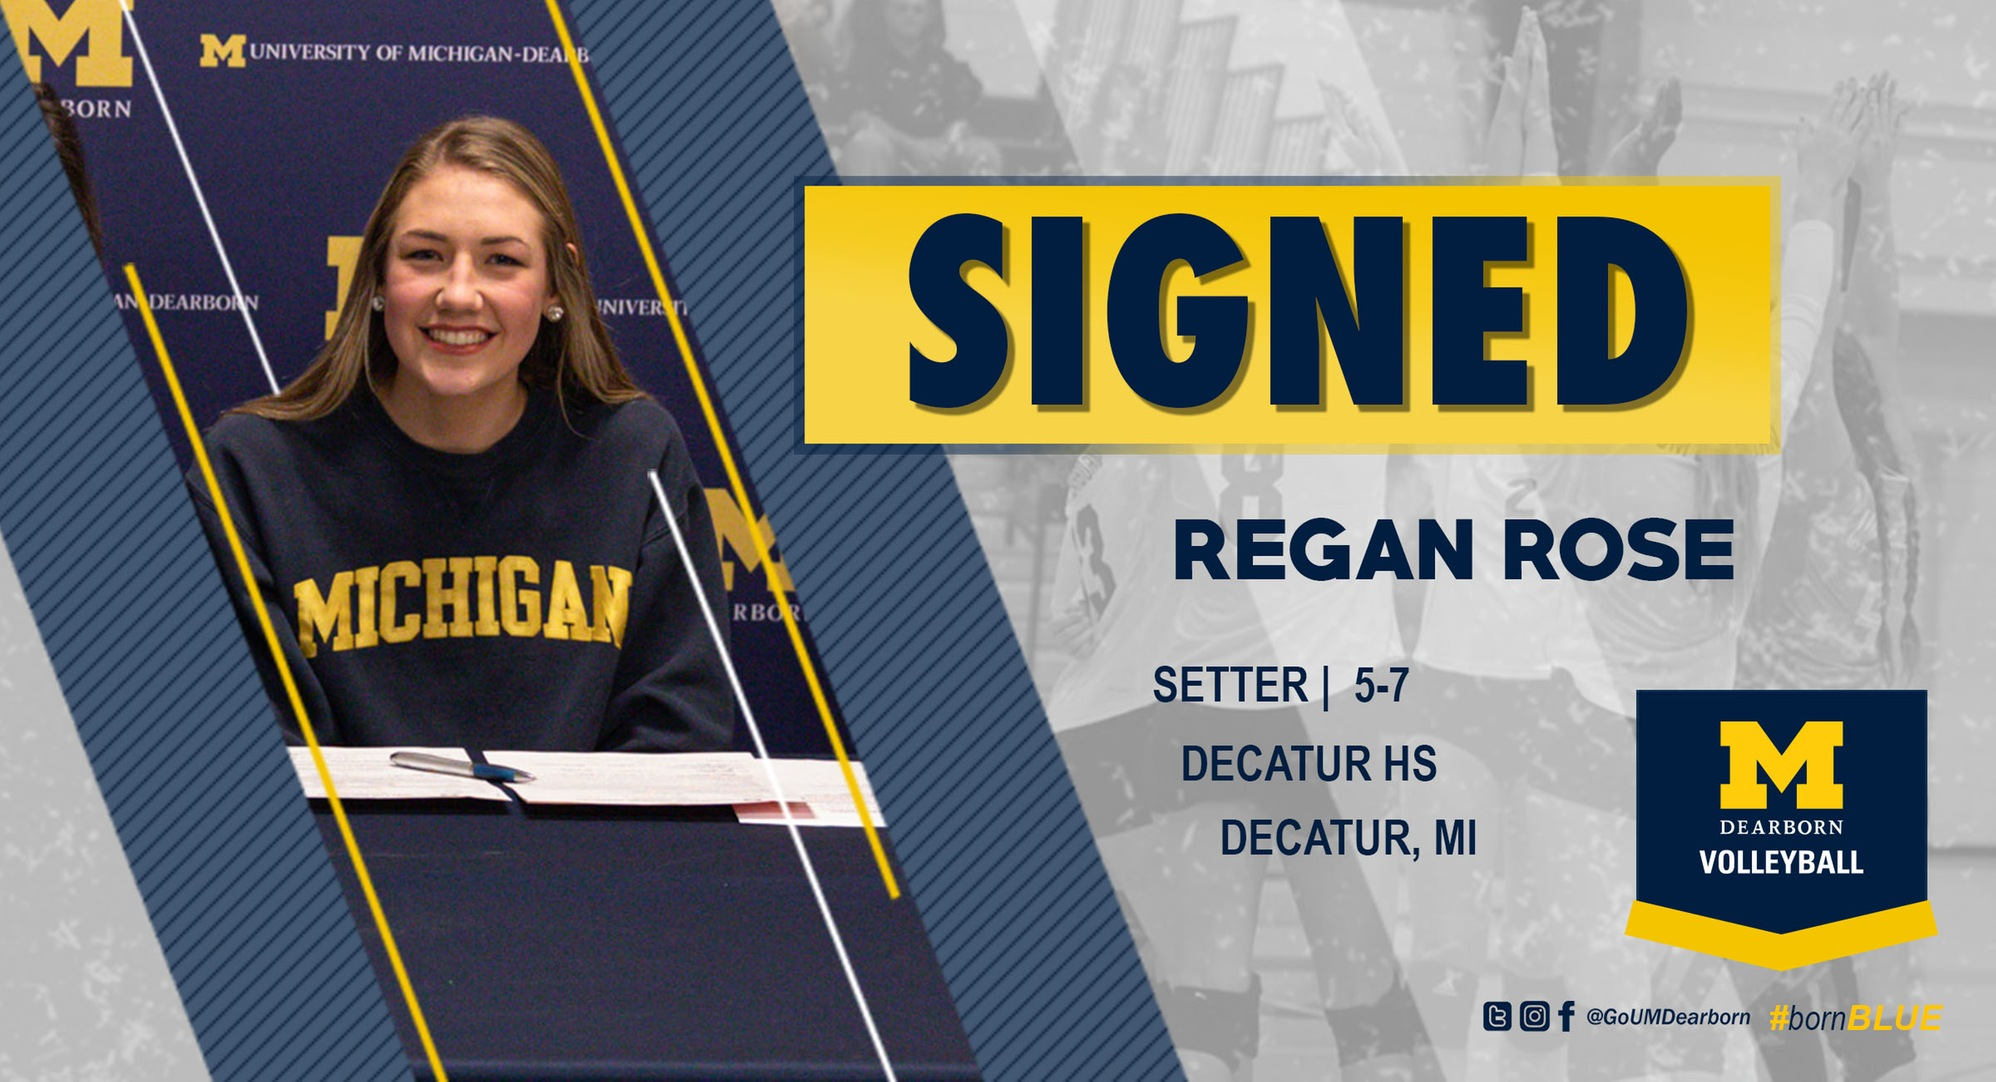 UM-Dearborn Volleyball inks Regan Rose to Class of 2020